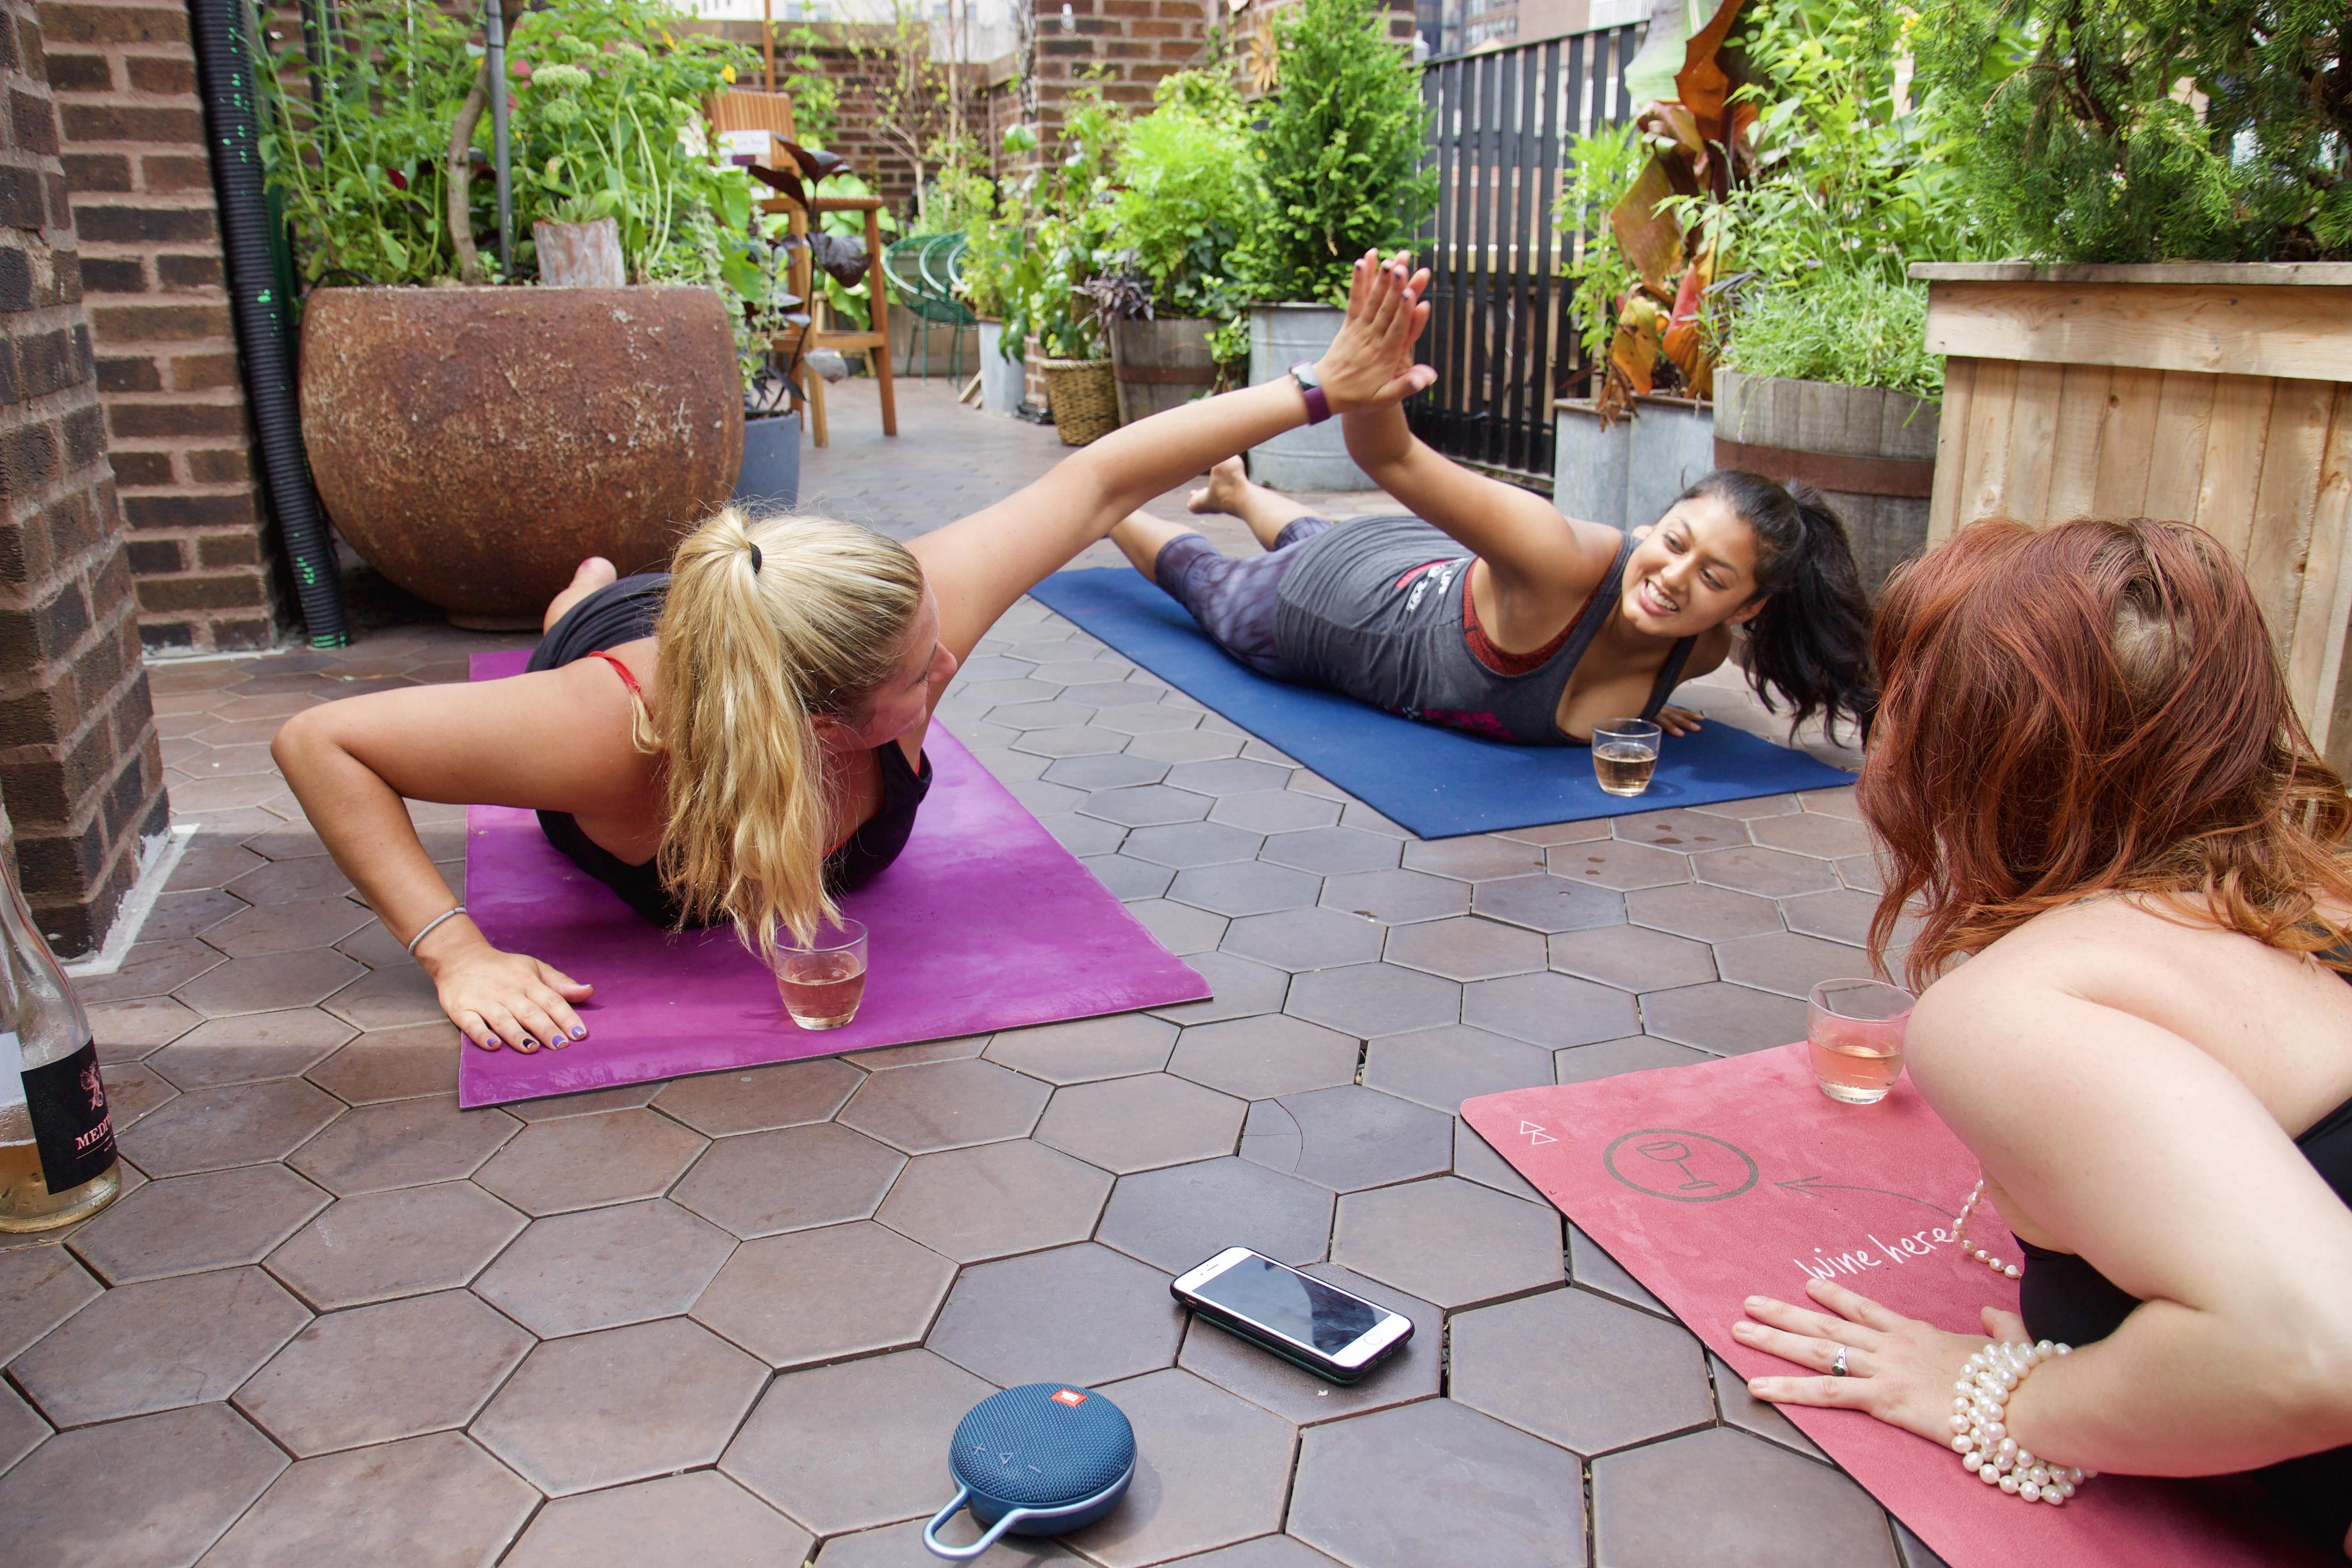 Drunk Yoga Nyc Presents Hair Of The Down Dog Yoga At Freehand Hotel S Broken Shaker Rooftop 1 Feb 2020